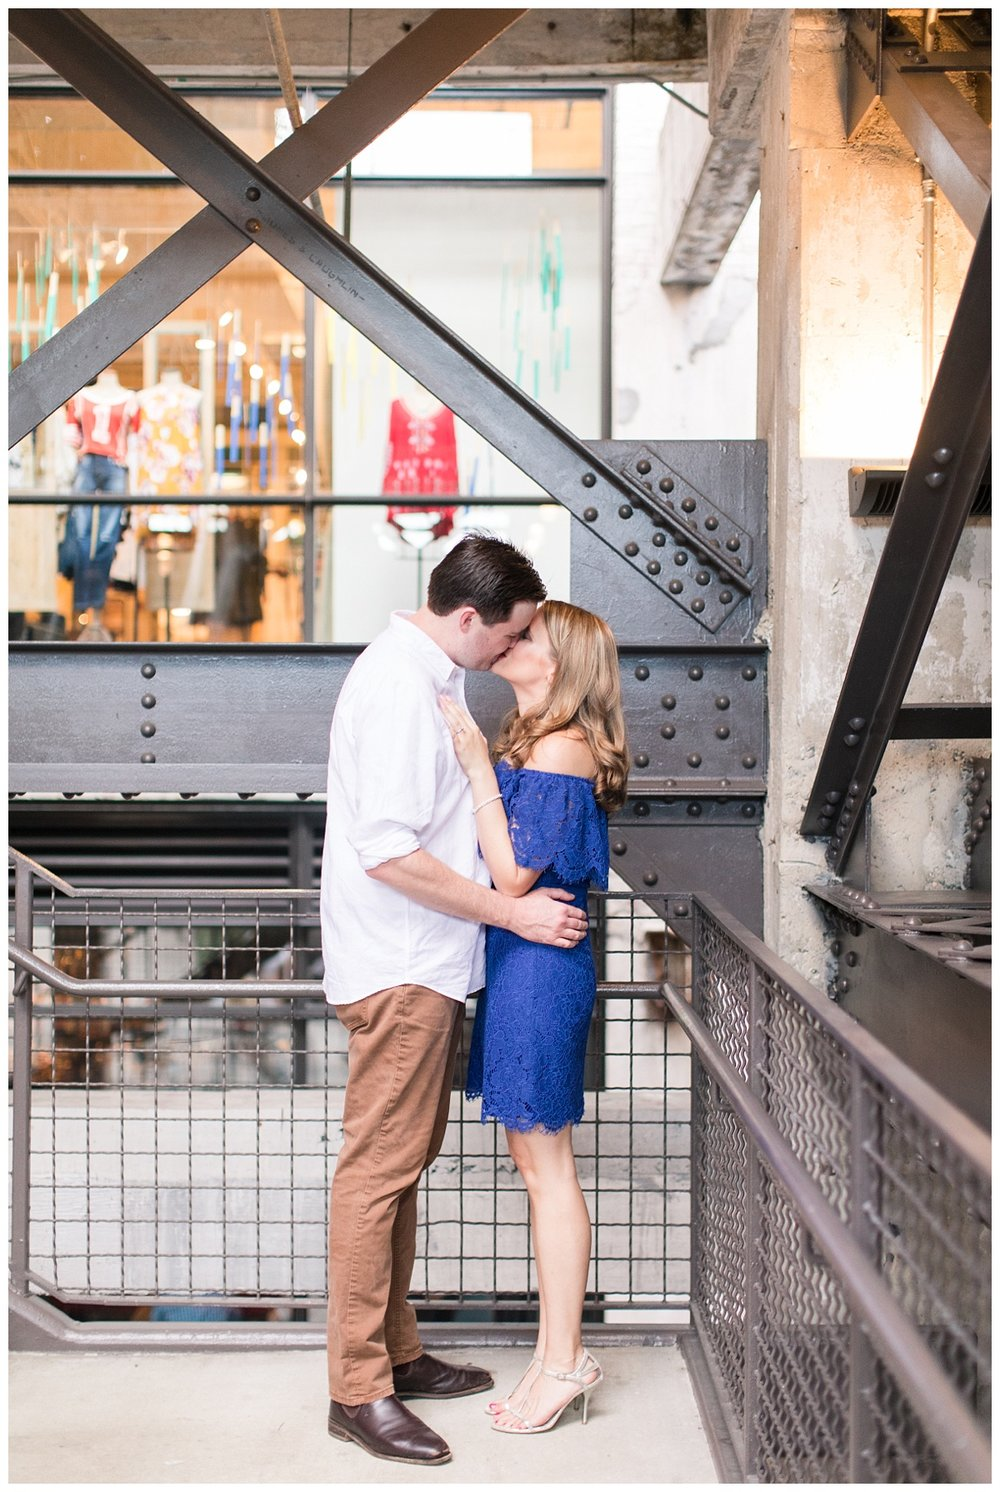 Engagement Pictures_KIm and Hamish_Abby Breaux Photography_Atlanta_Ponce City Market_Jackson Street Bridge_0010.jpg